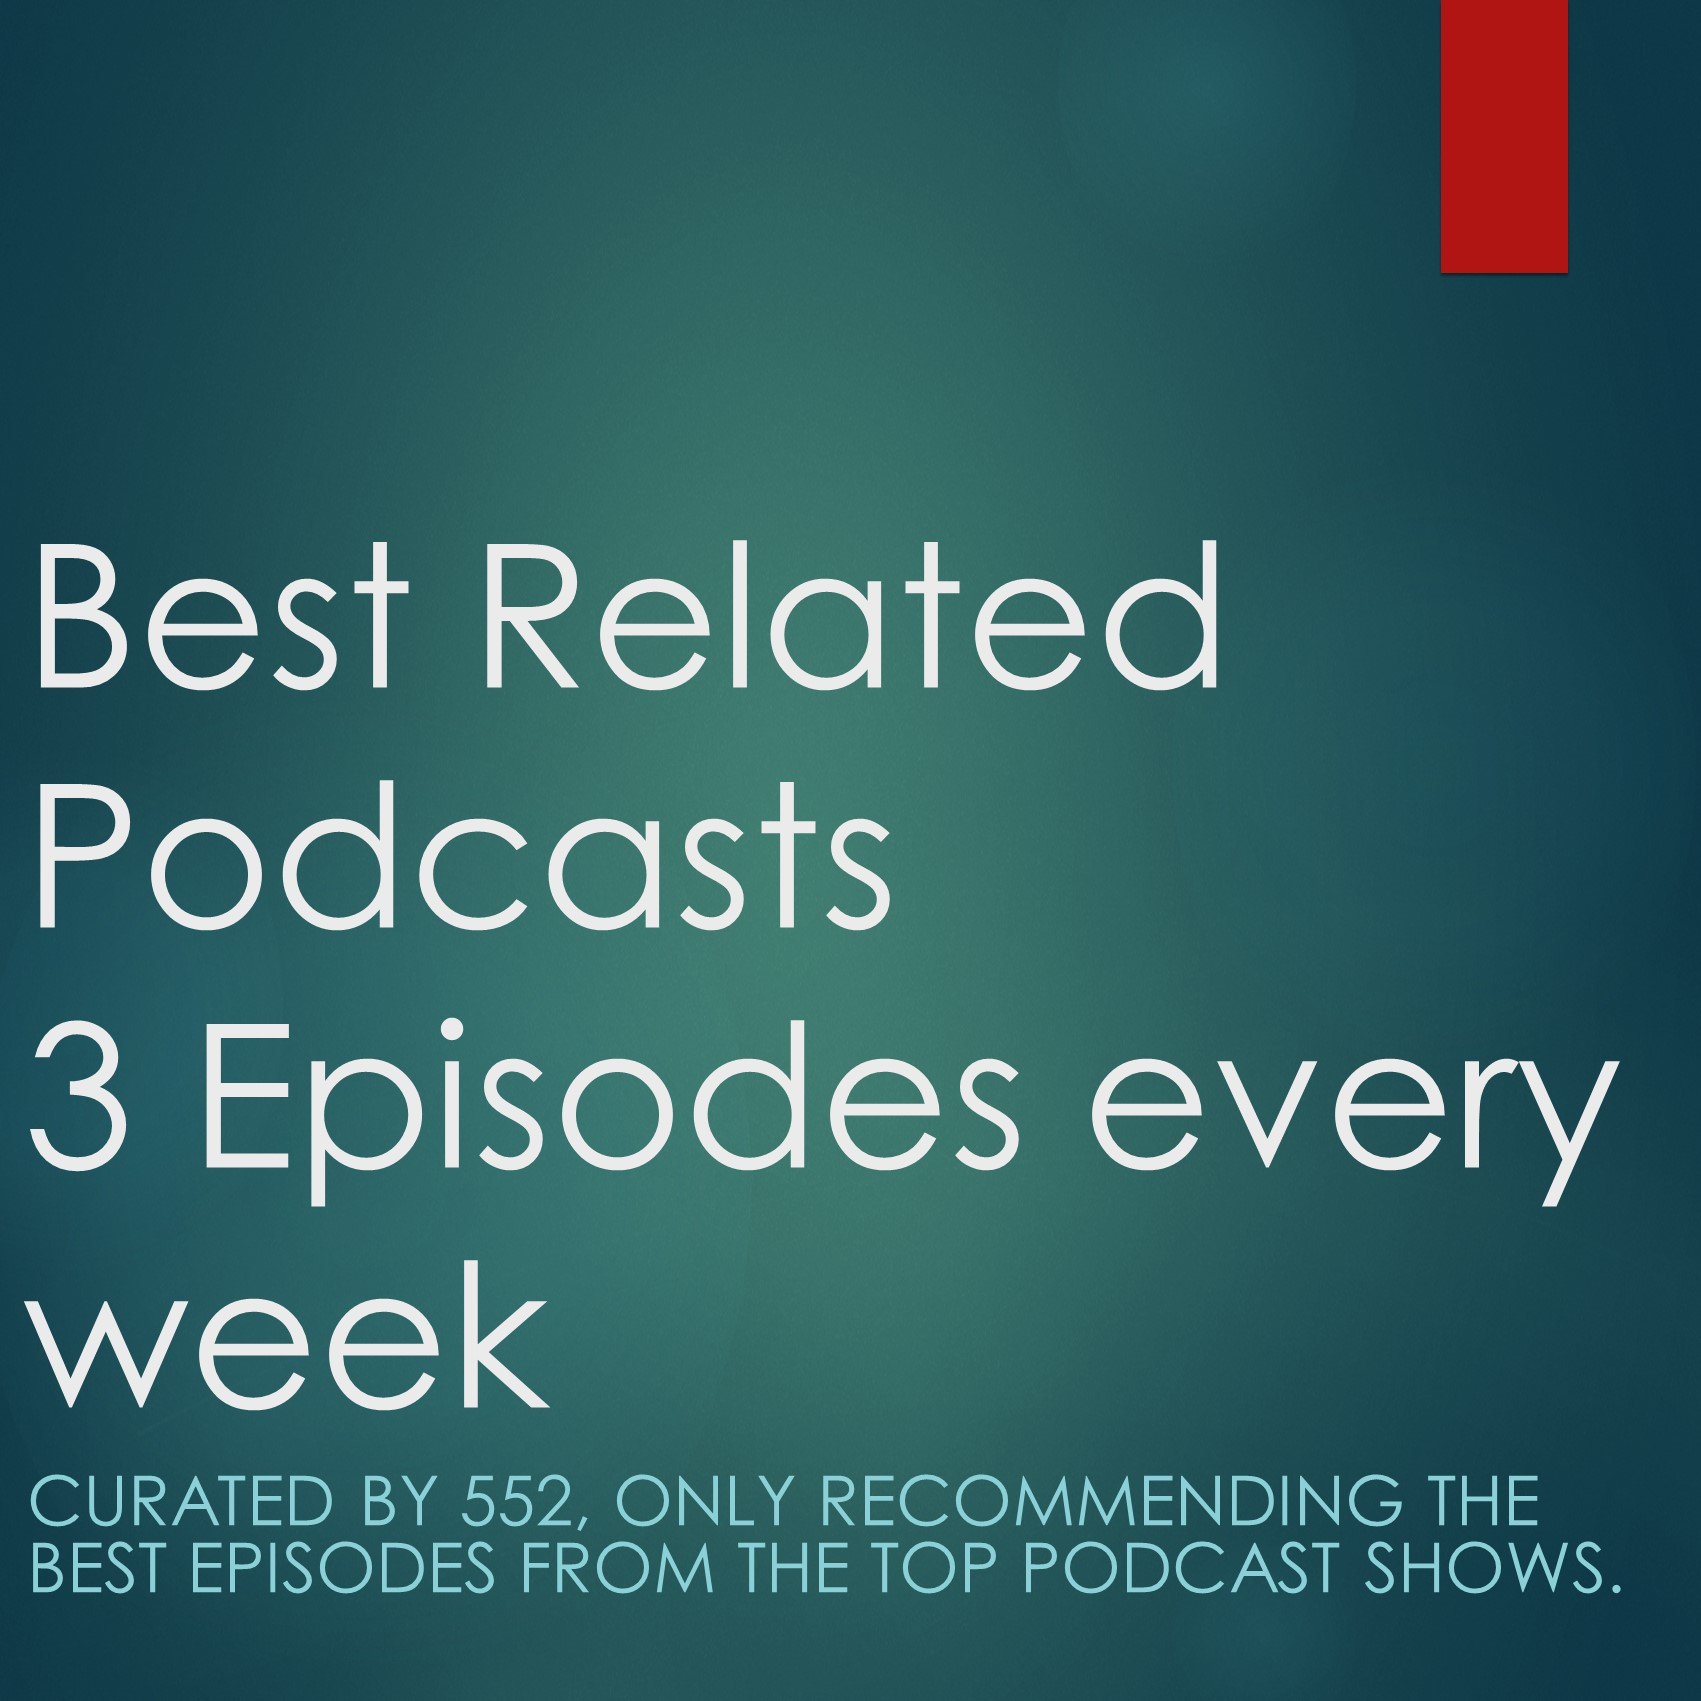 Best Podcasts Similar To Up and Vanished - 3 Episodes a week